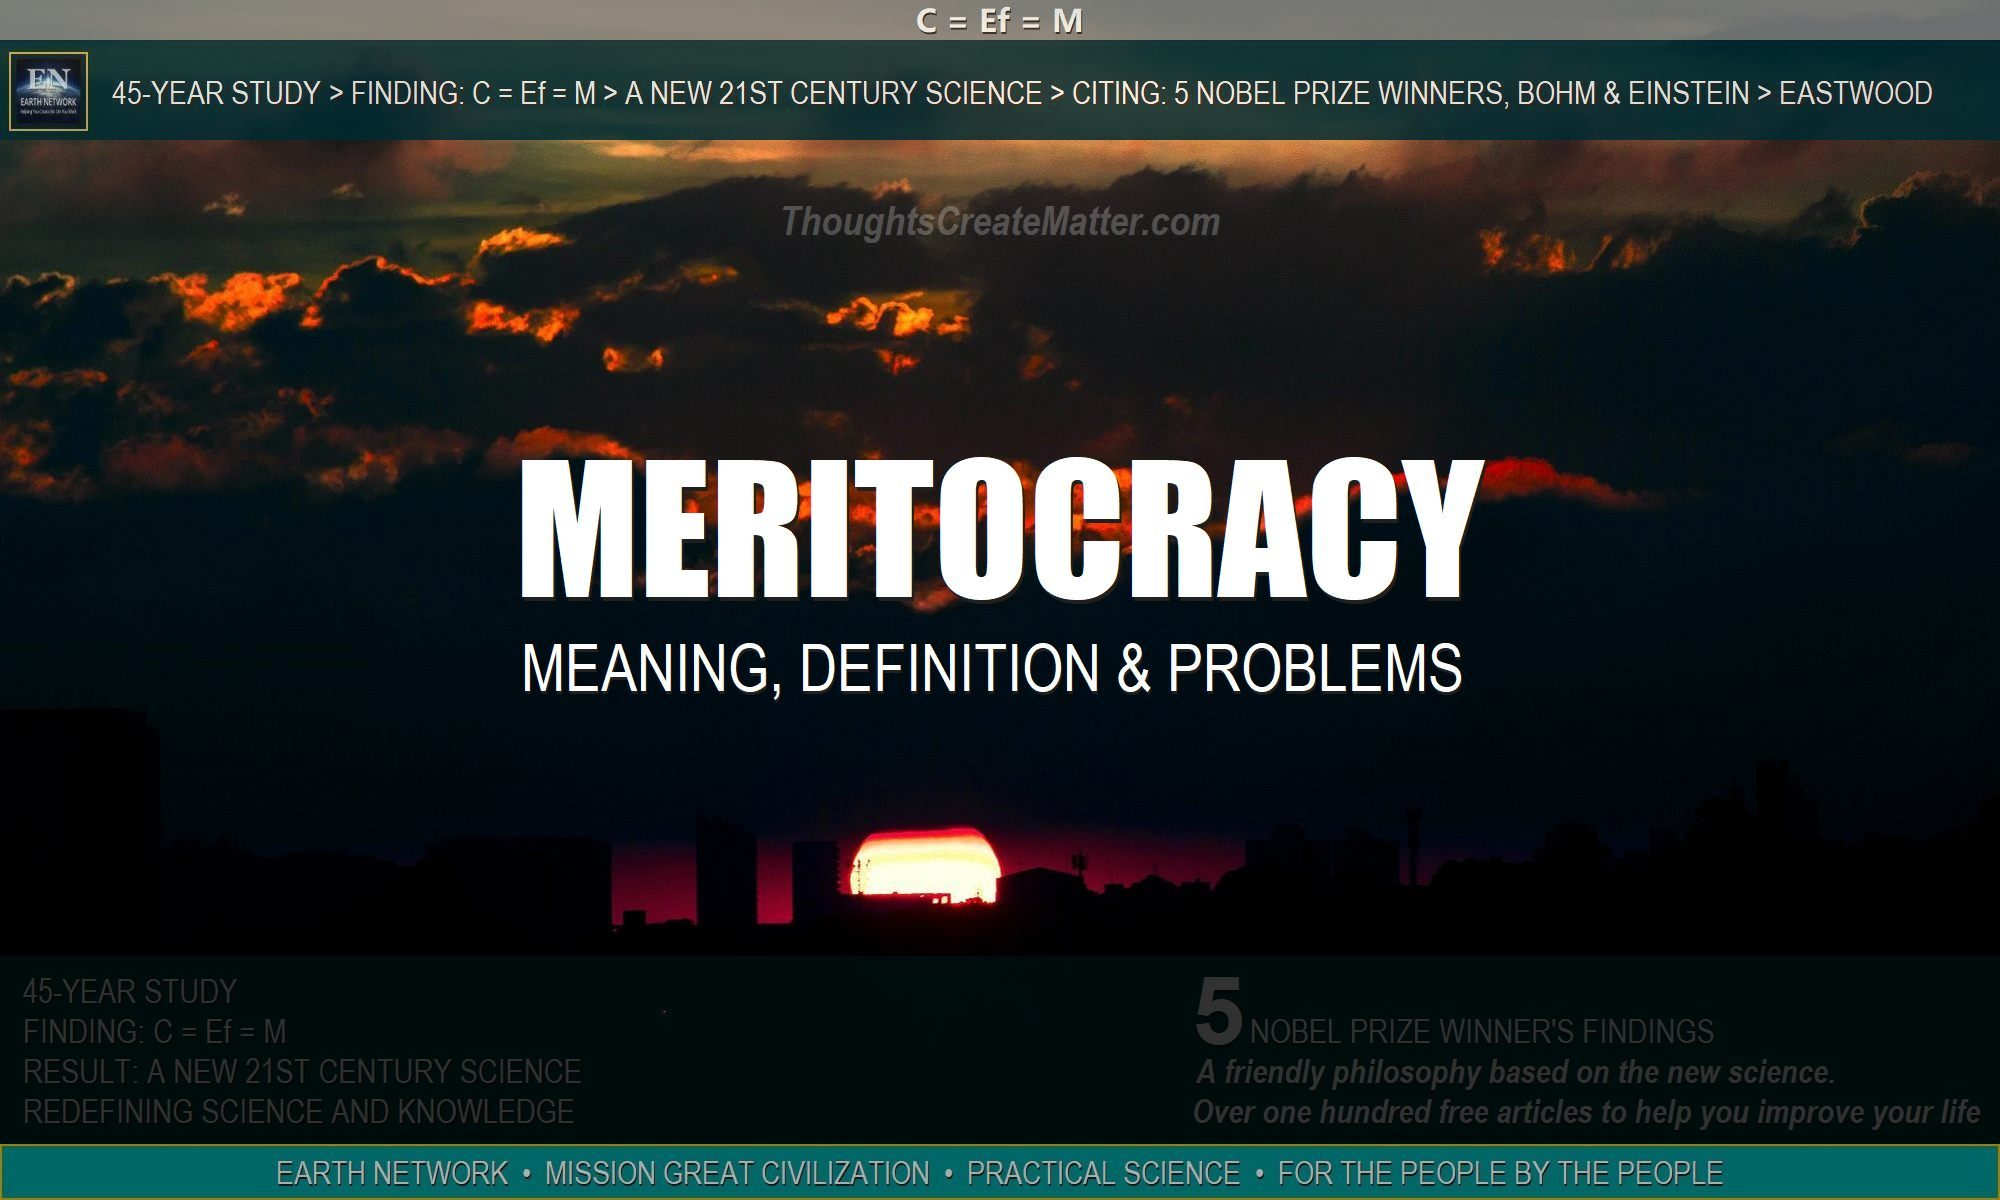 dark sunset over city depict problems with our meritocracy. sky depicts problems with our meritocracy. Meaning, definition and outward focused civilization.